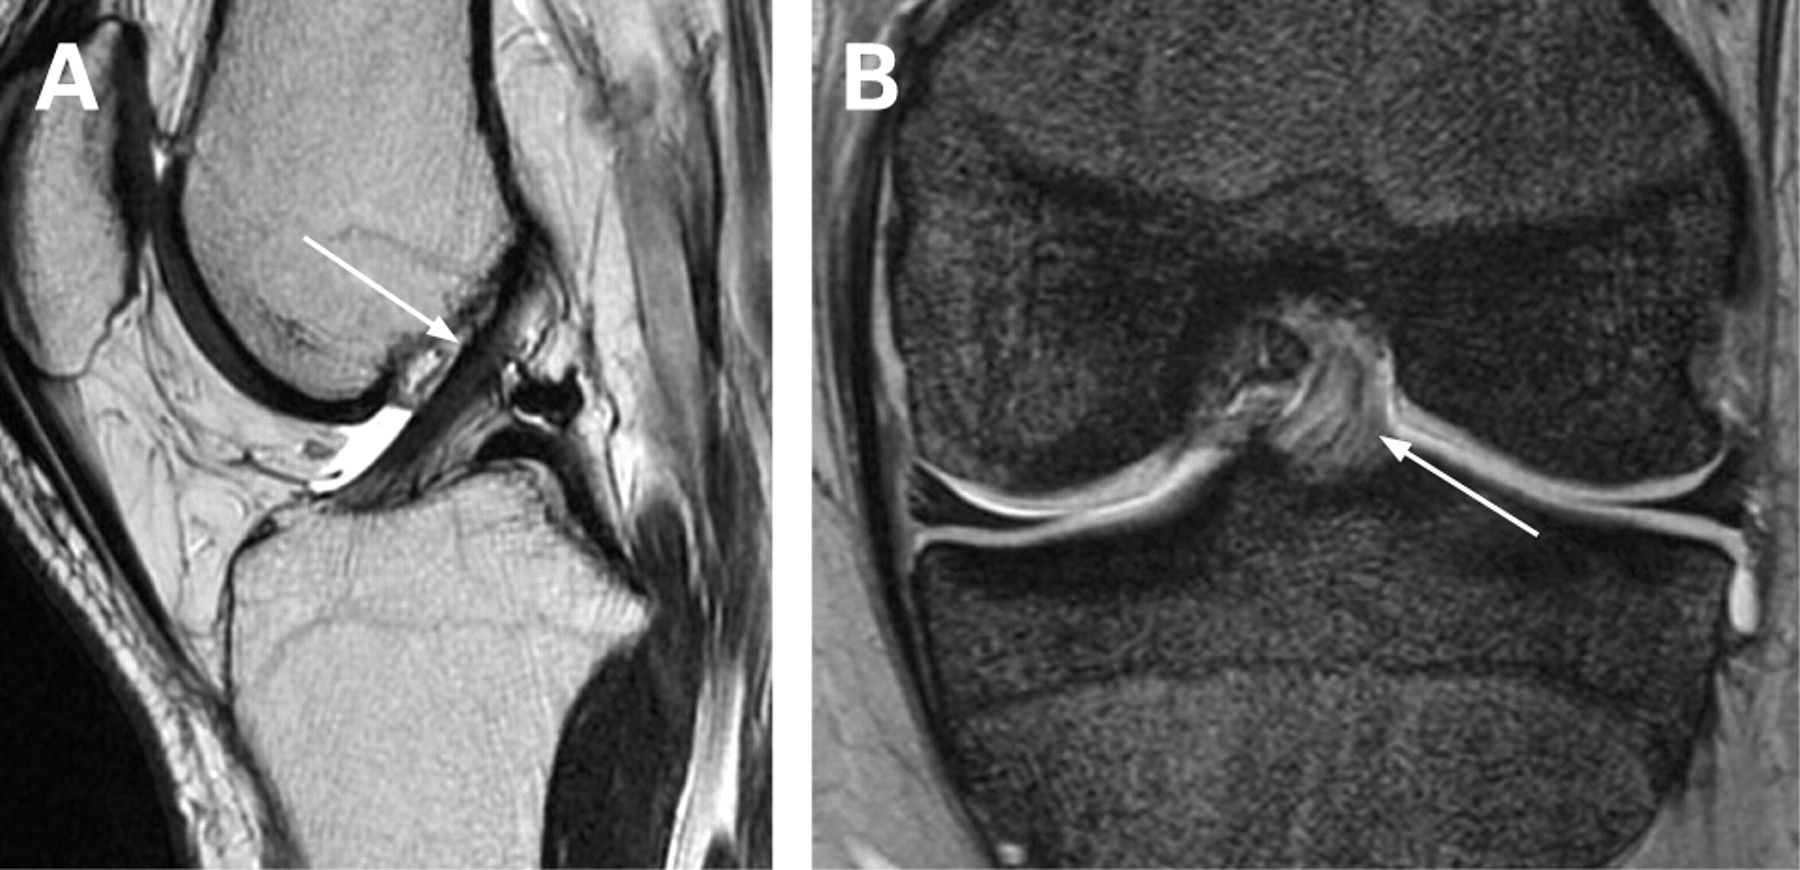 A discussion on the nature of the anterior crucial ligament acl injury